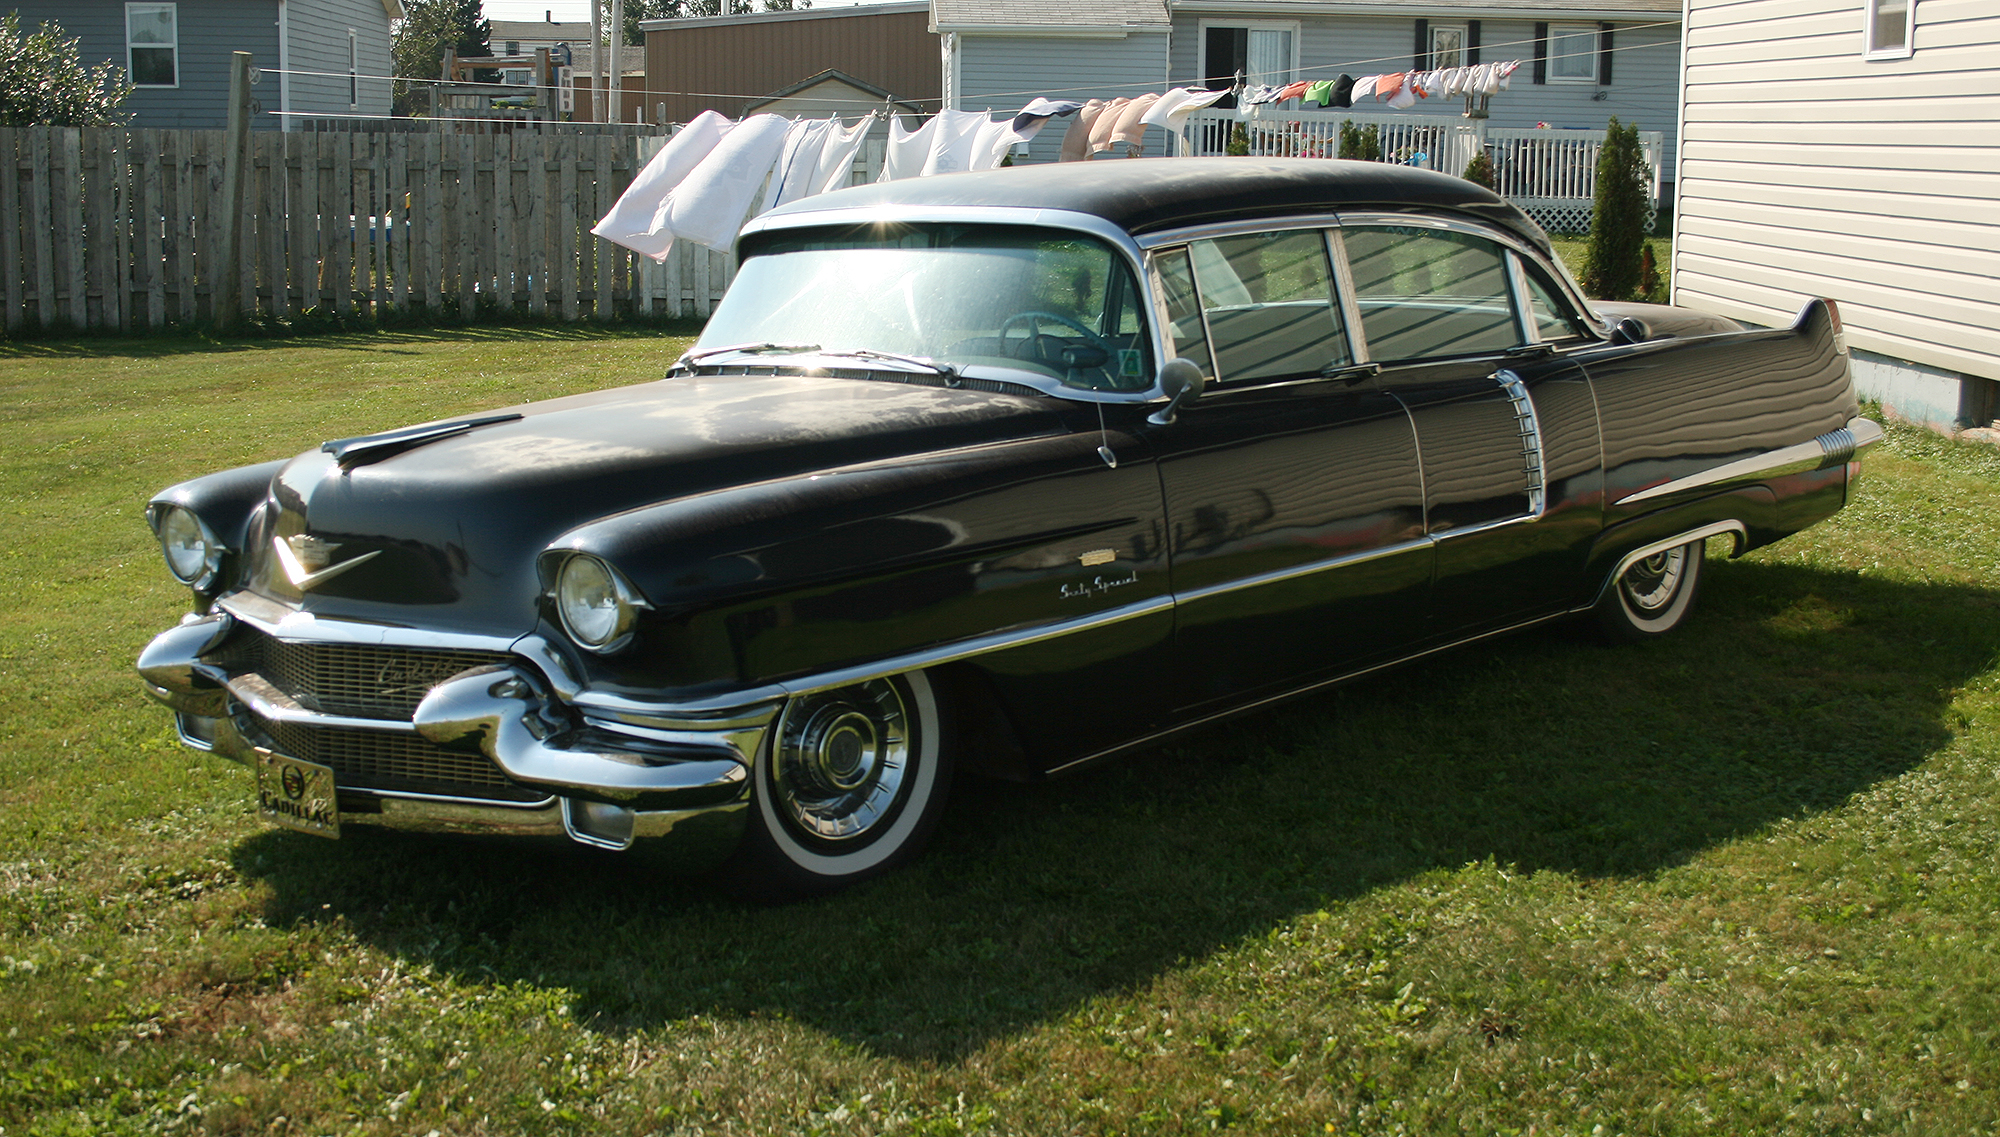 Cadillac Cars Wiki >> File:1956 Cadillac Sixty Special.JPG - Wikimedia Commons